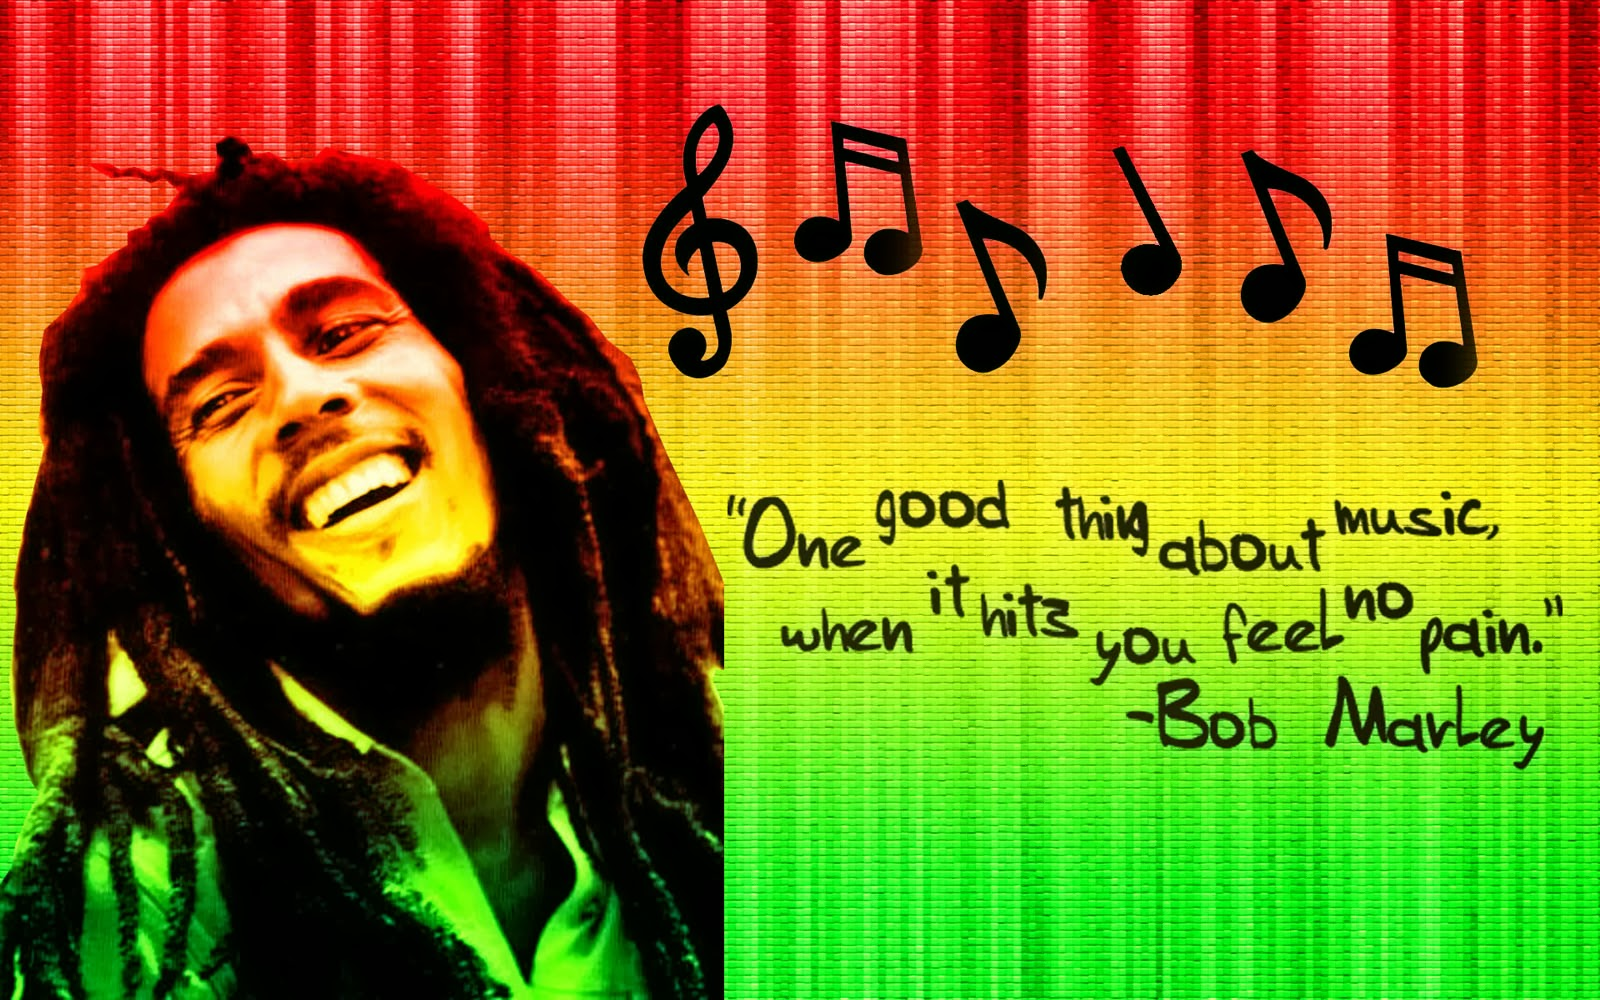 Bob Marley Quotes About Friendship Top 120 Most Inspiring Bob Marley Quotesquotesurf